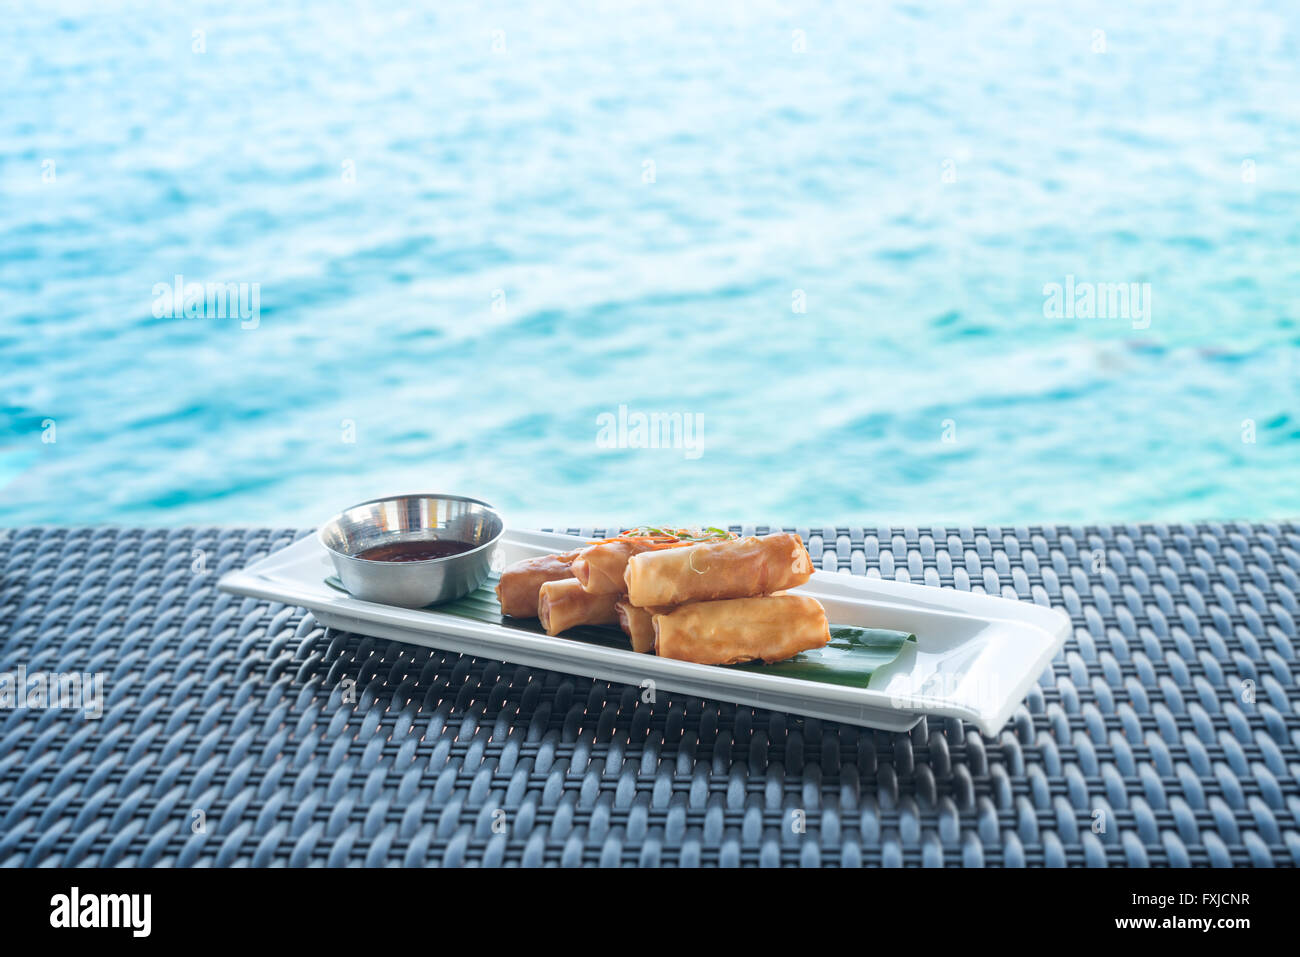 Vegetable fried spring rolls served with bittersweet sauce on wicker table and water background - Stock Image